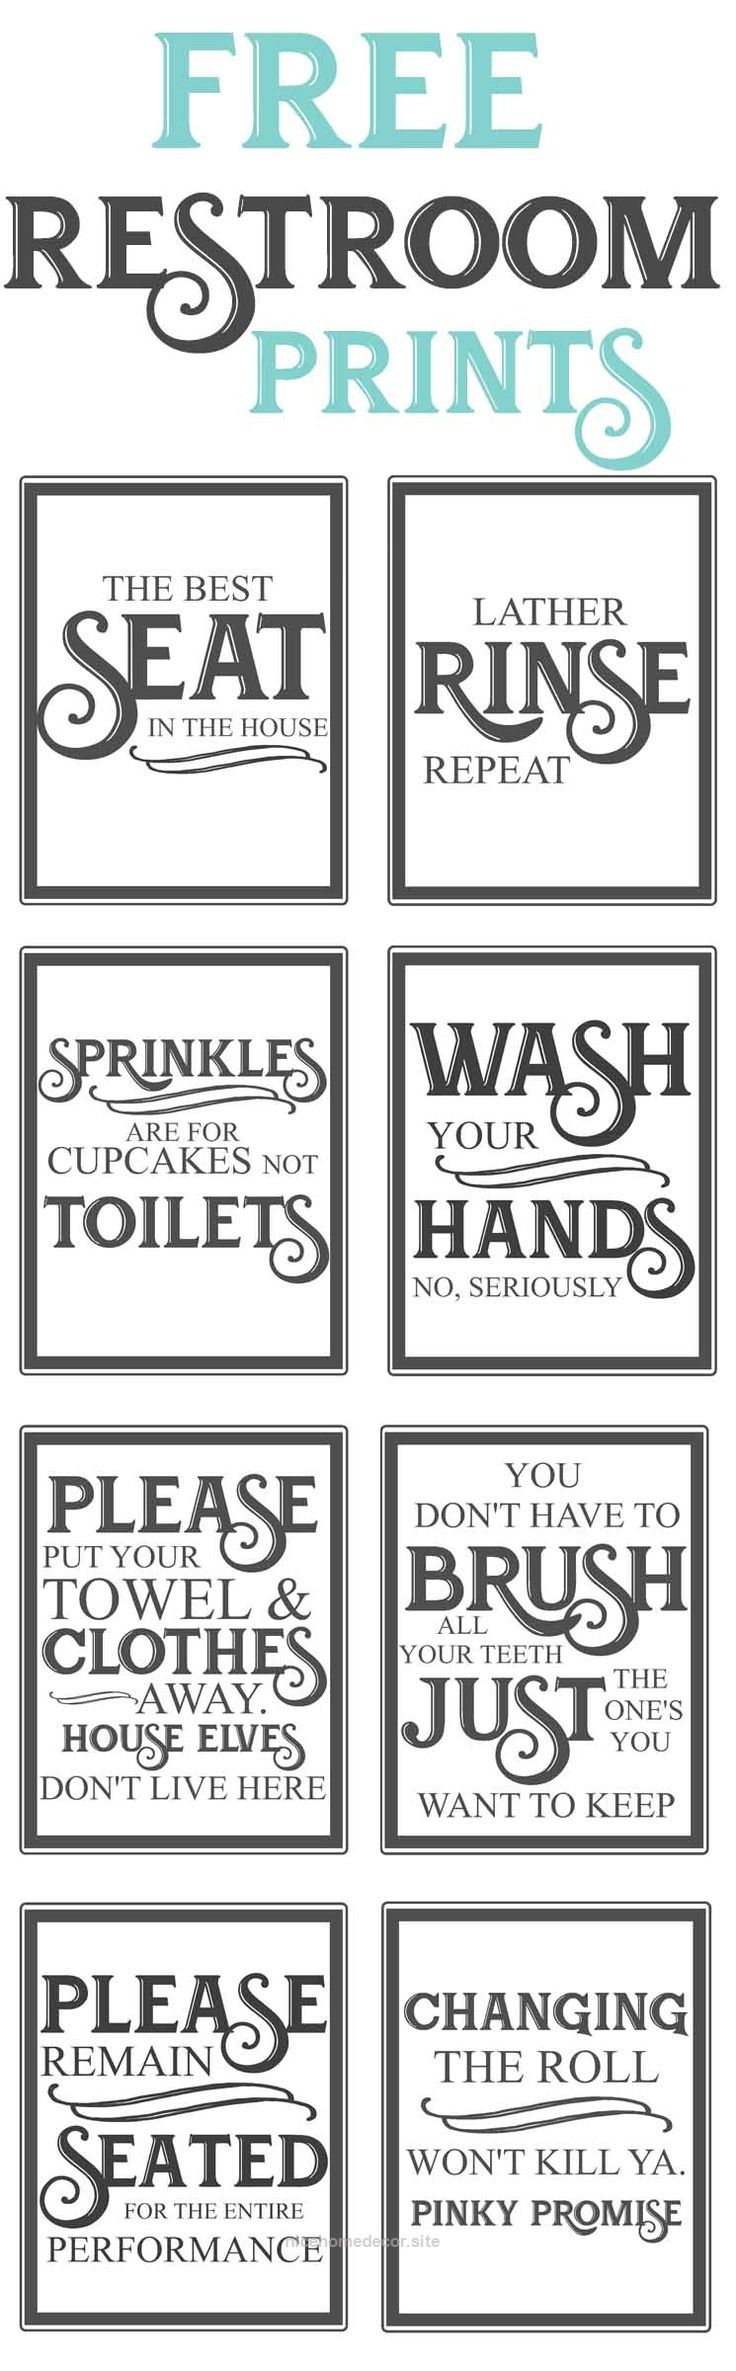 Free Vintage inspired bathroom printables-funny quotes to hang up in the restroo… www.nicehomedecor...